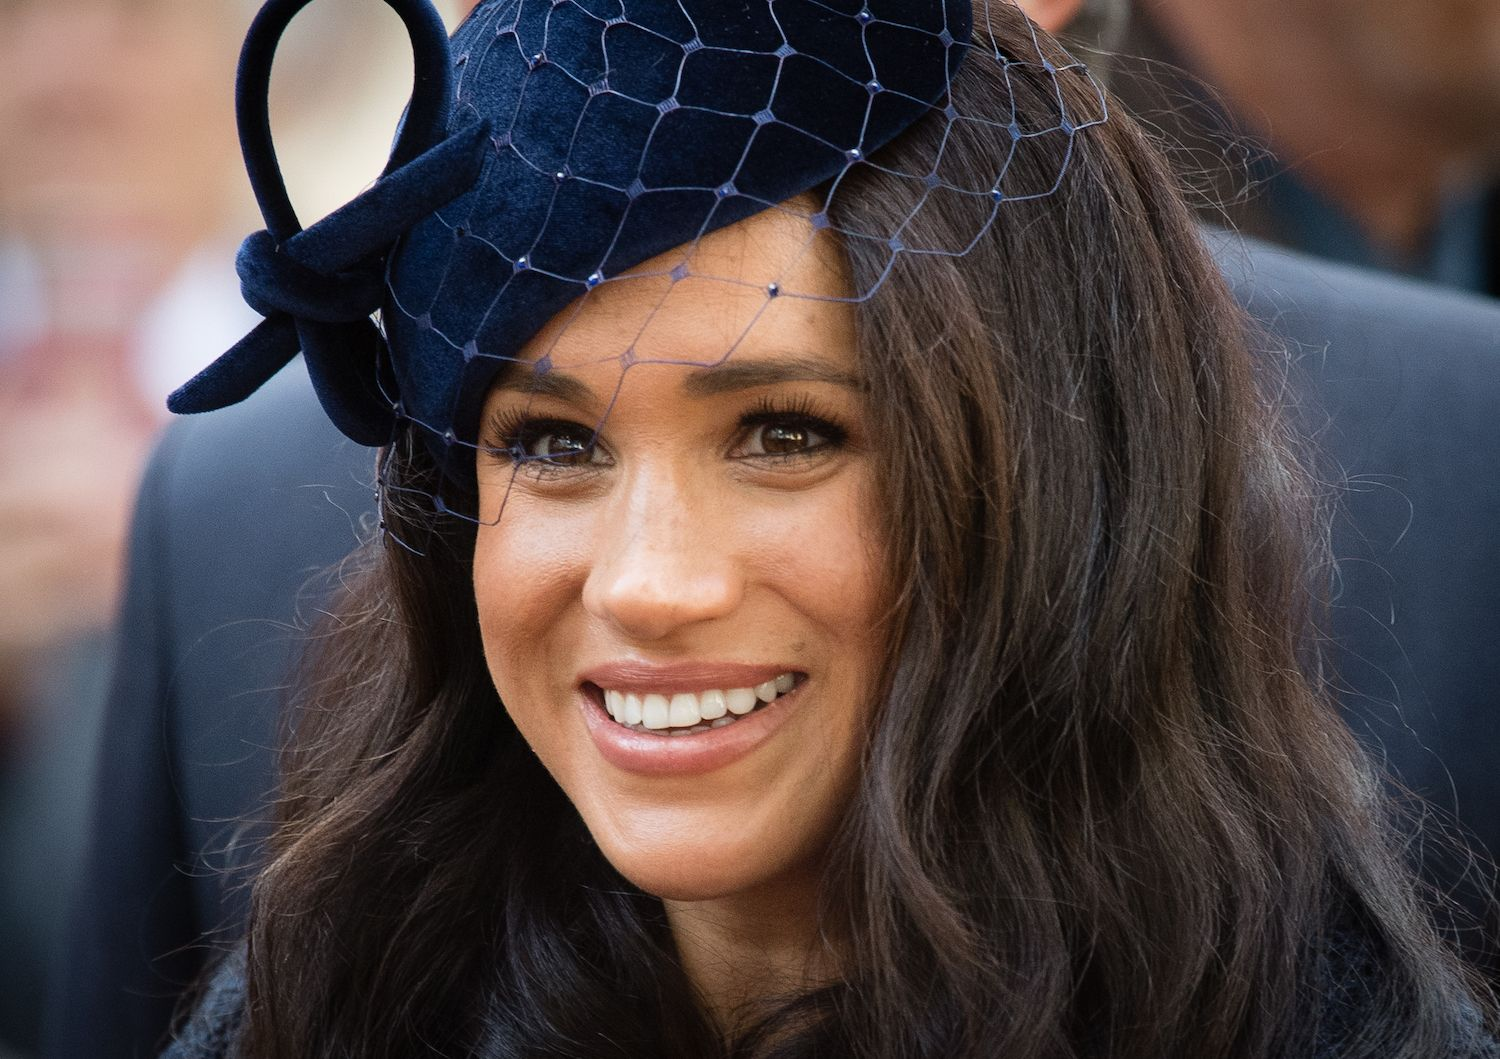 Meghan Markle Writes Powerful Letter About Importance Of Equal Access To Higher Education